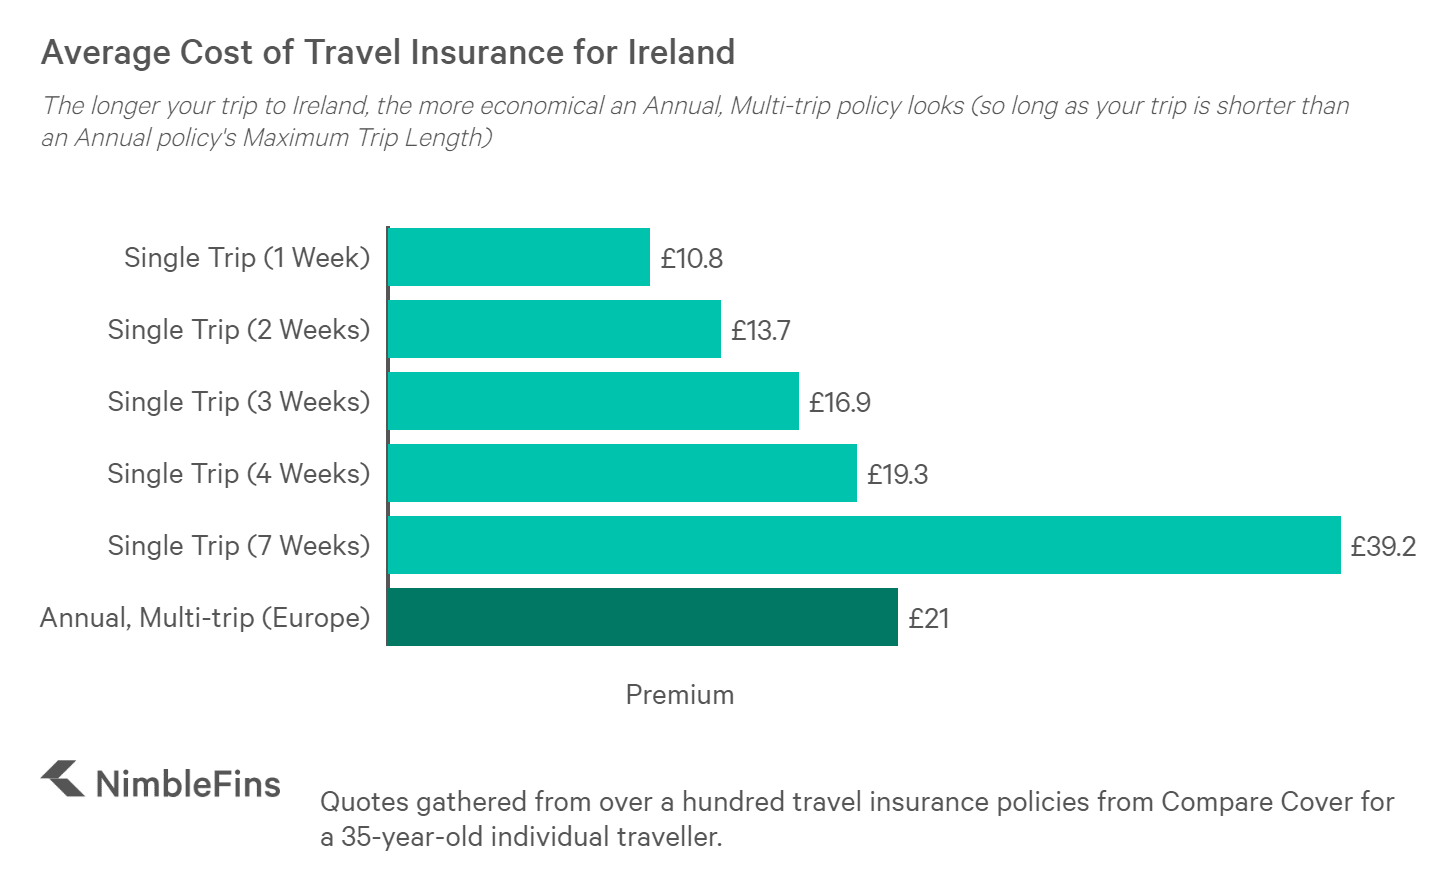 chart showing average cost of Single Trip travel insurance to Ireland